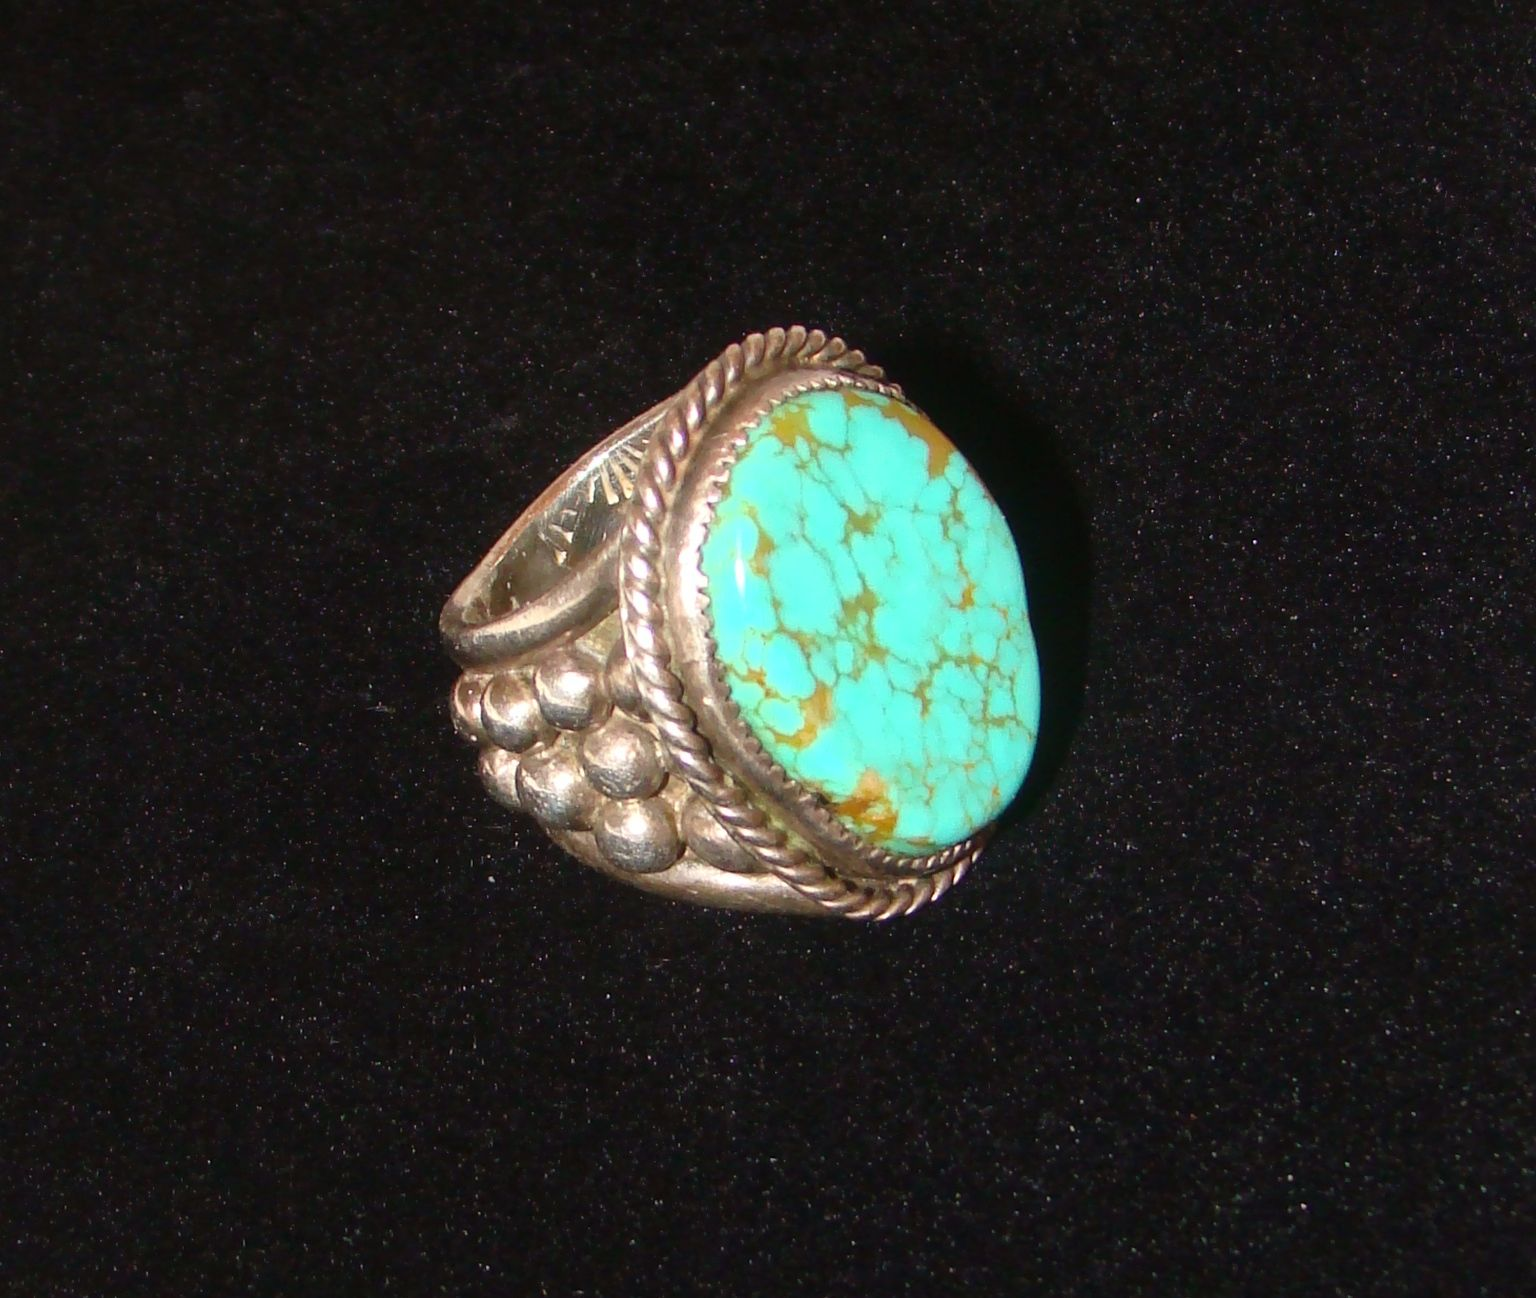 Pin by vintage417 on turquoise Turquoise jewelry, Ring